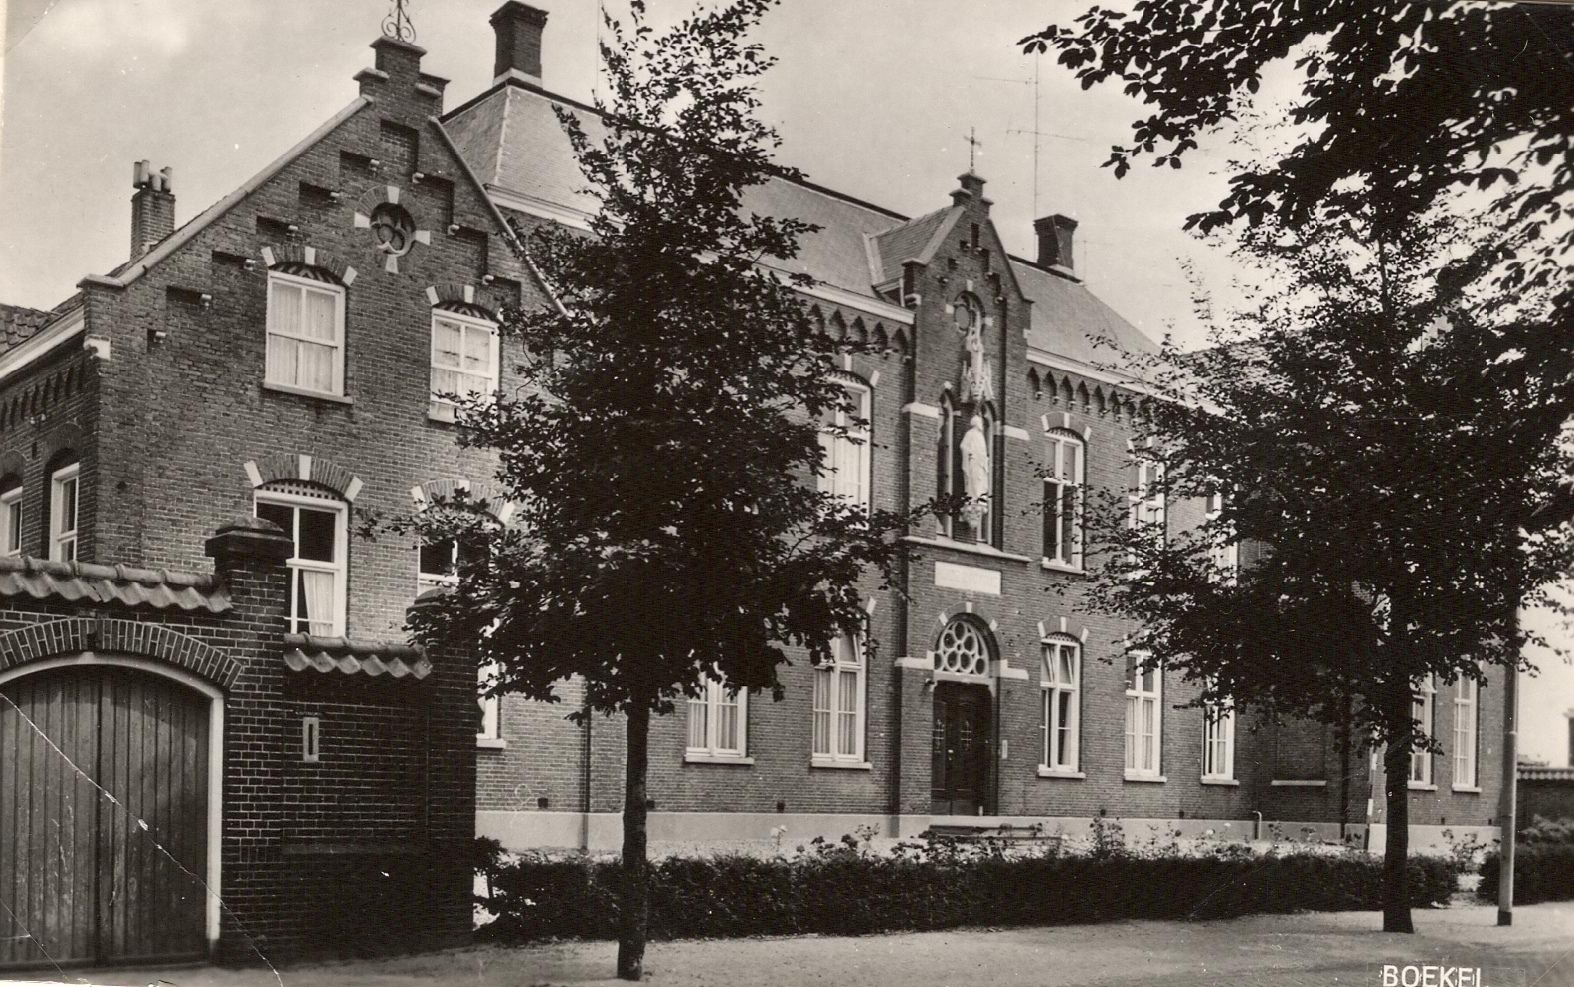 Datering 1970. klooster